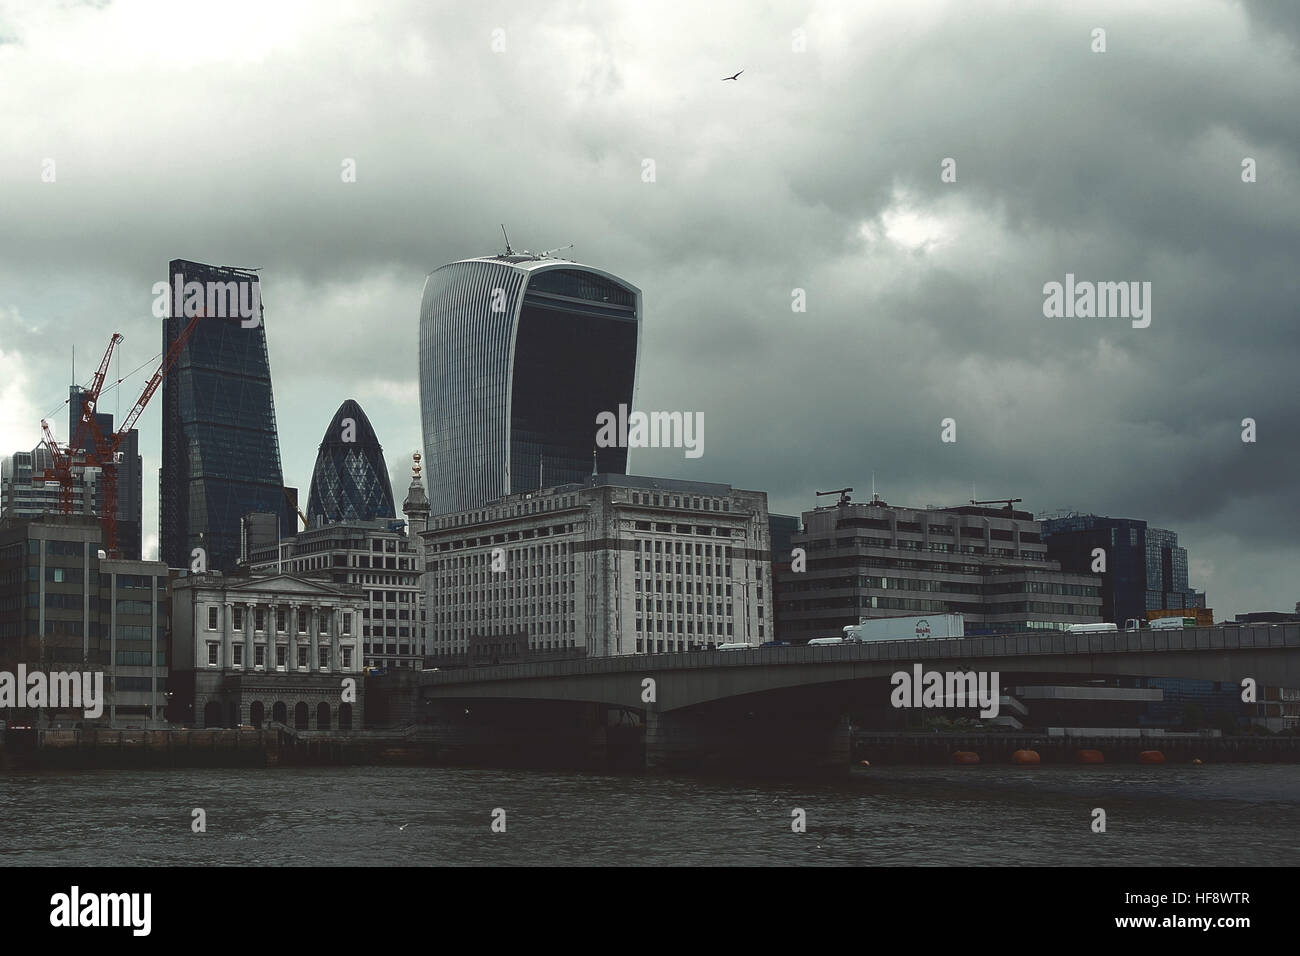 London,Uk - April 15, 2016: London's panorama on City office buildings, the leading banking, investments and - Stock Image